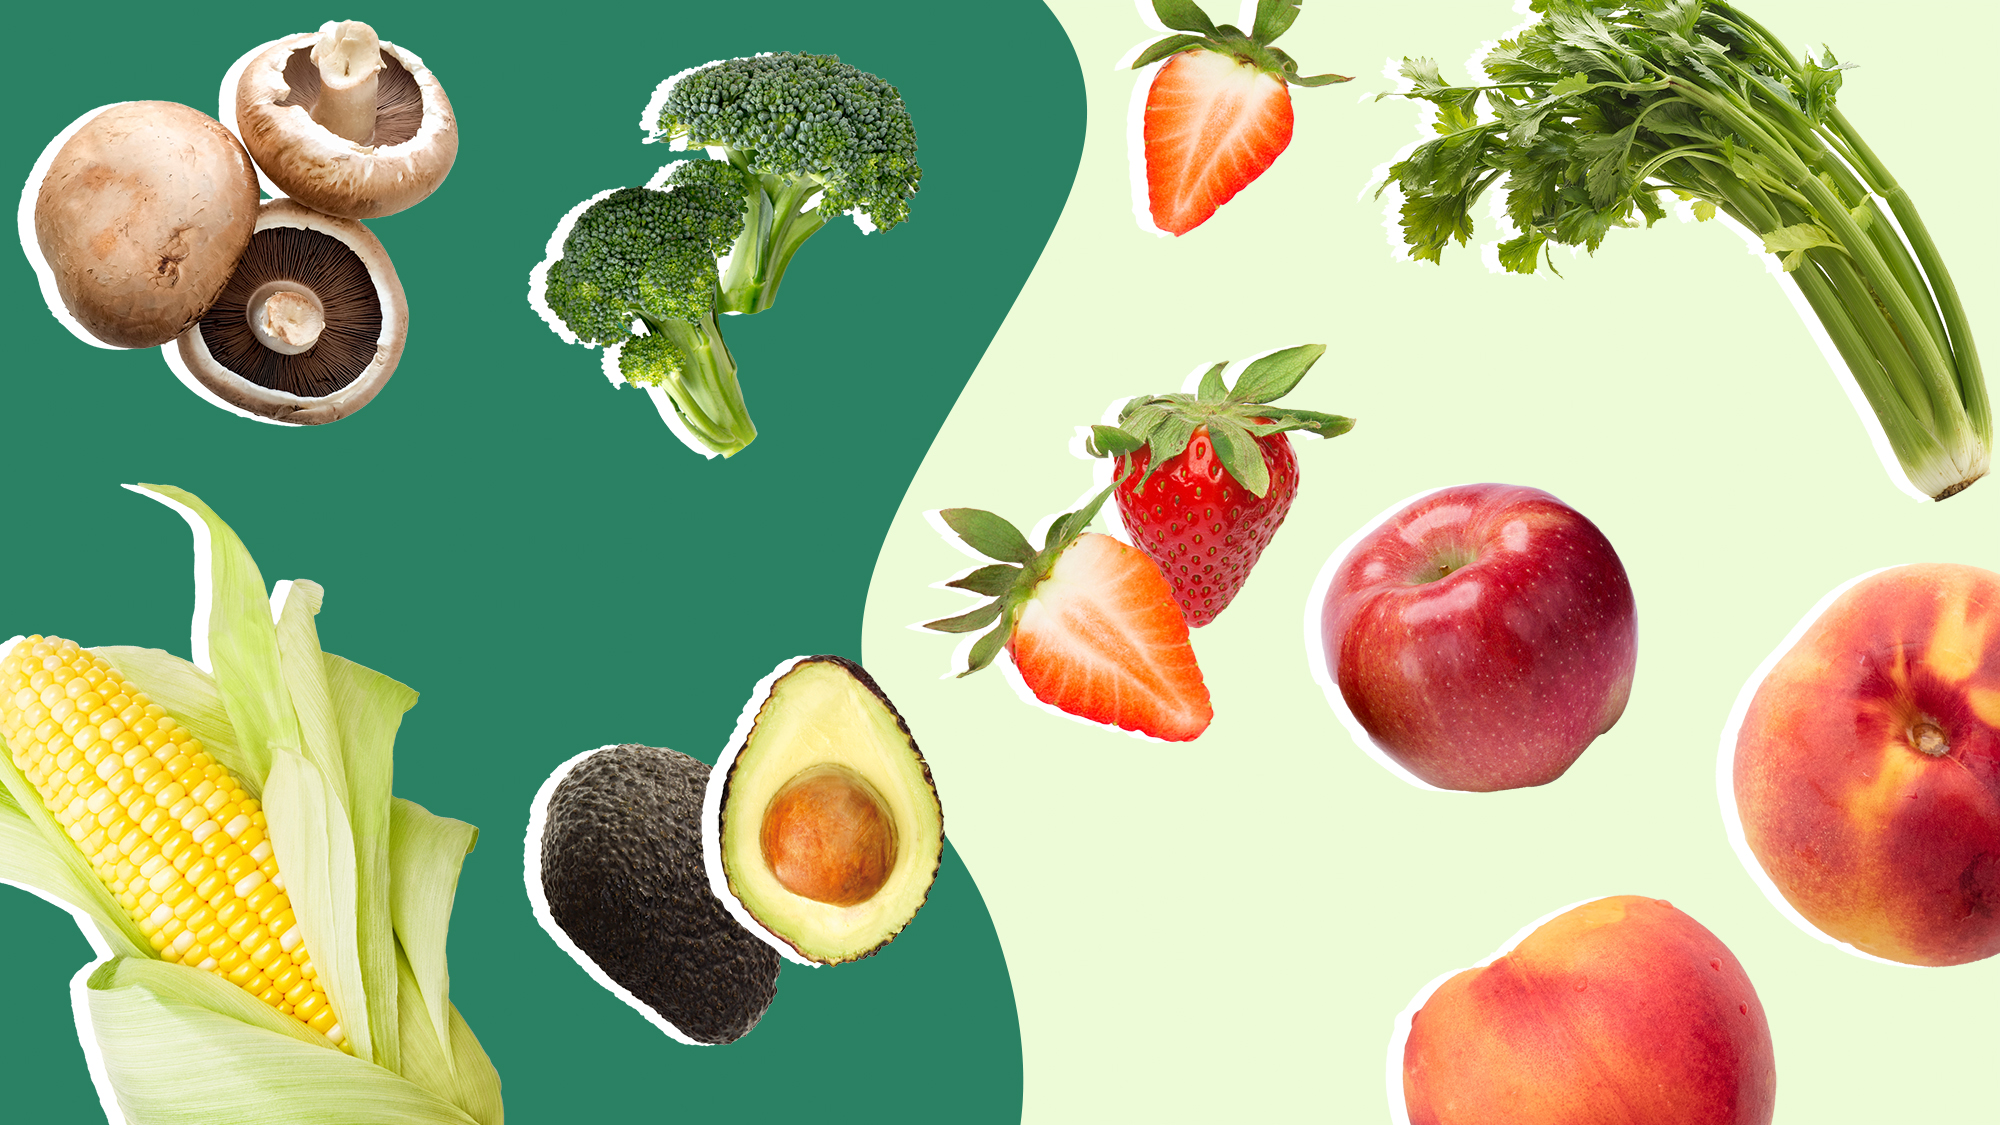 Collage of different fruits and vegetables